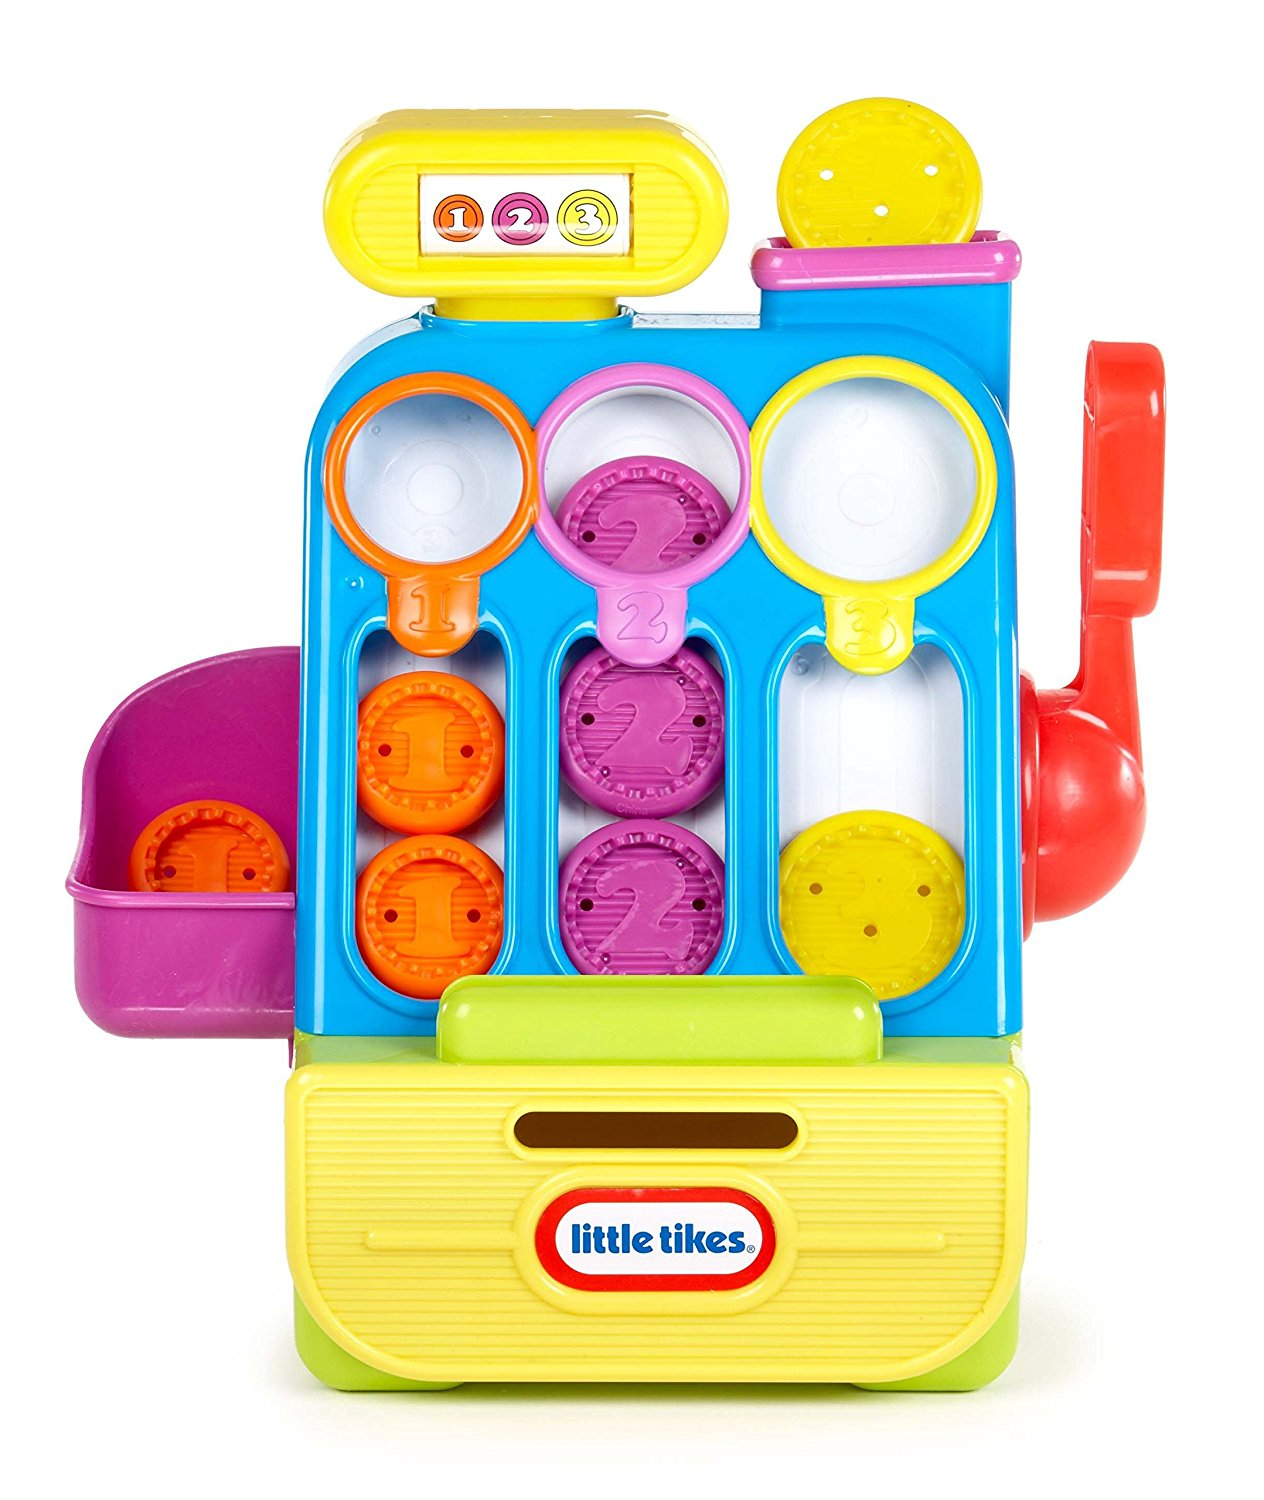 Little tikes cash register - Check Out This Great Gift Idea For Any Child Who Loves To Play Pretend Right Now You Can Get This Little Tikes Count N Play Cash Register Playset For Only